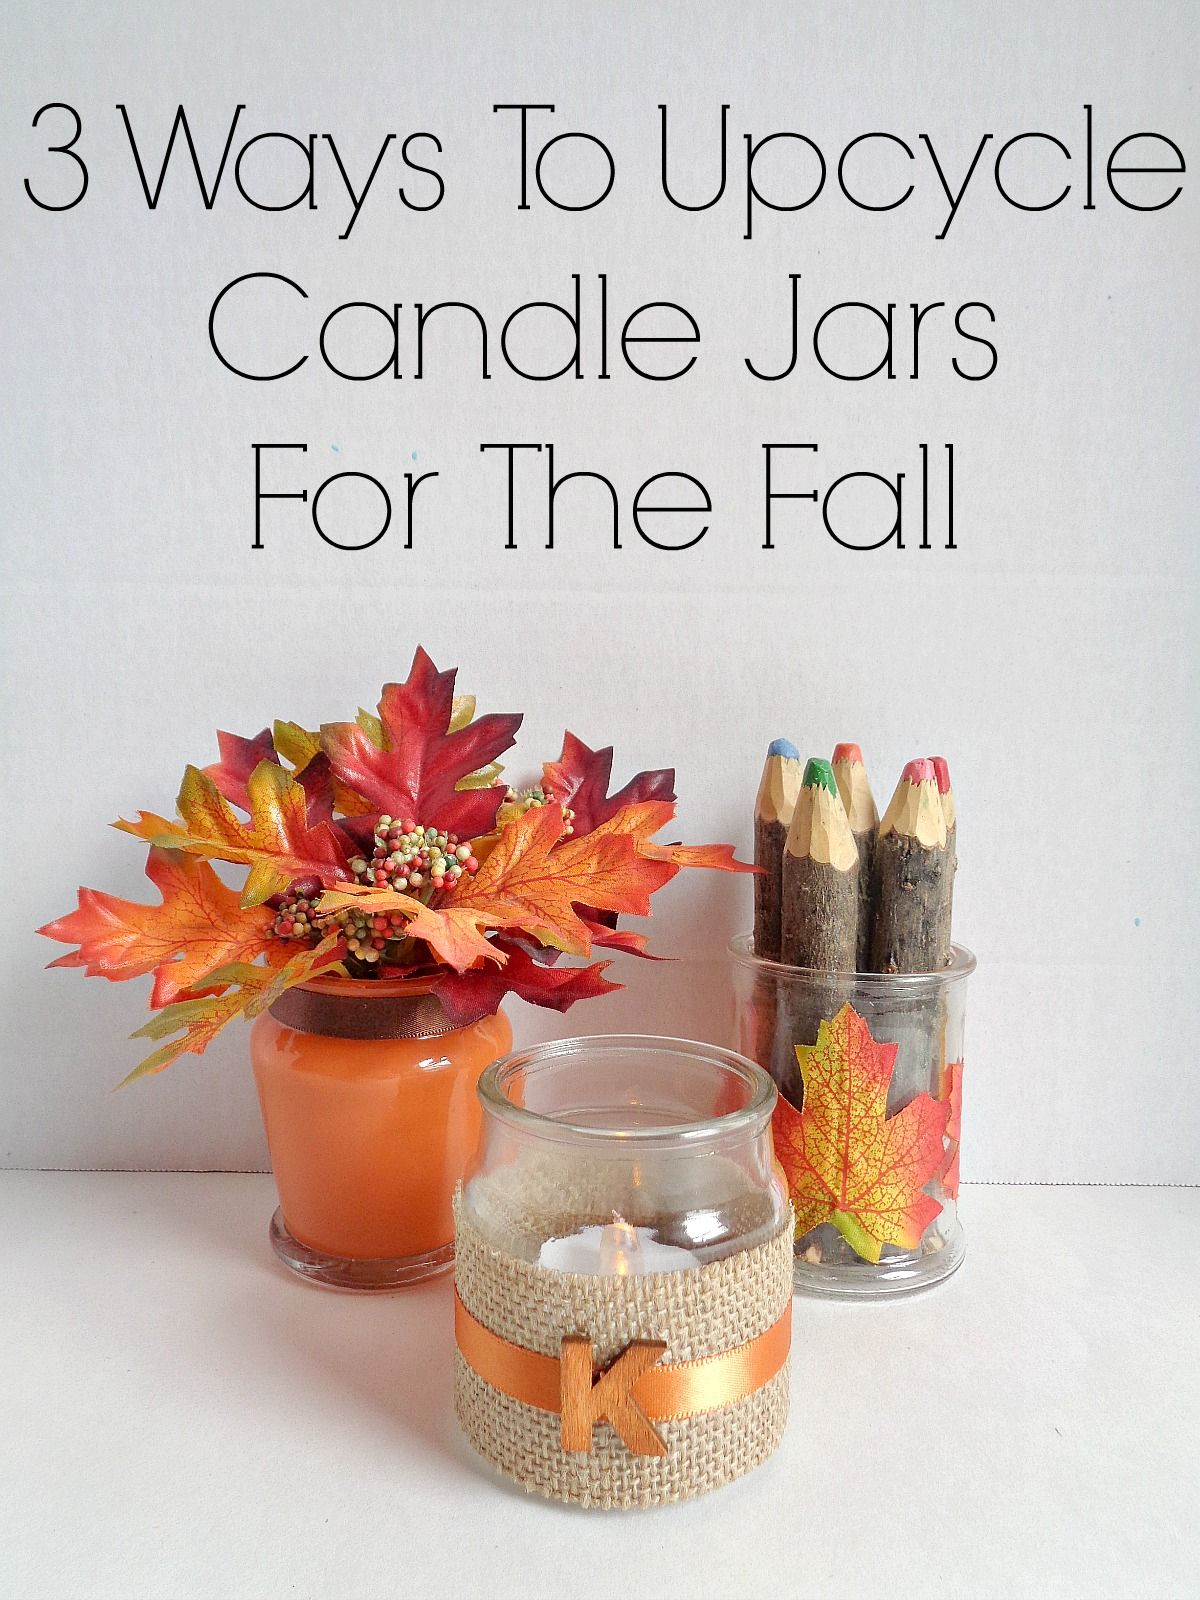 Ways To Upcycle Candle Jars For The Fall